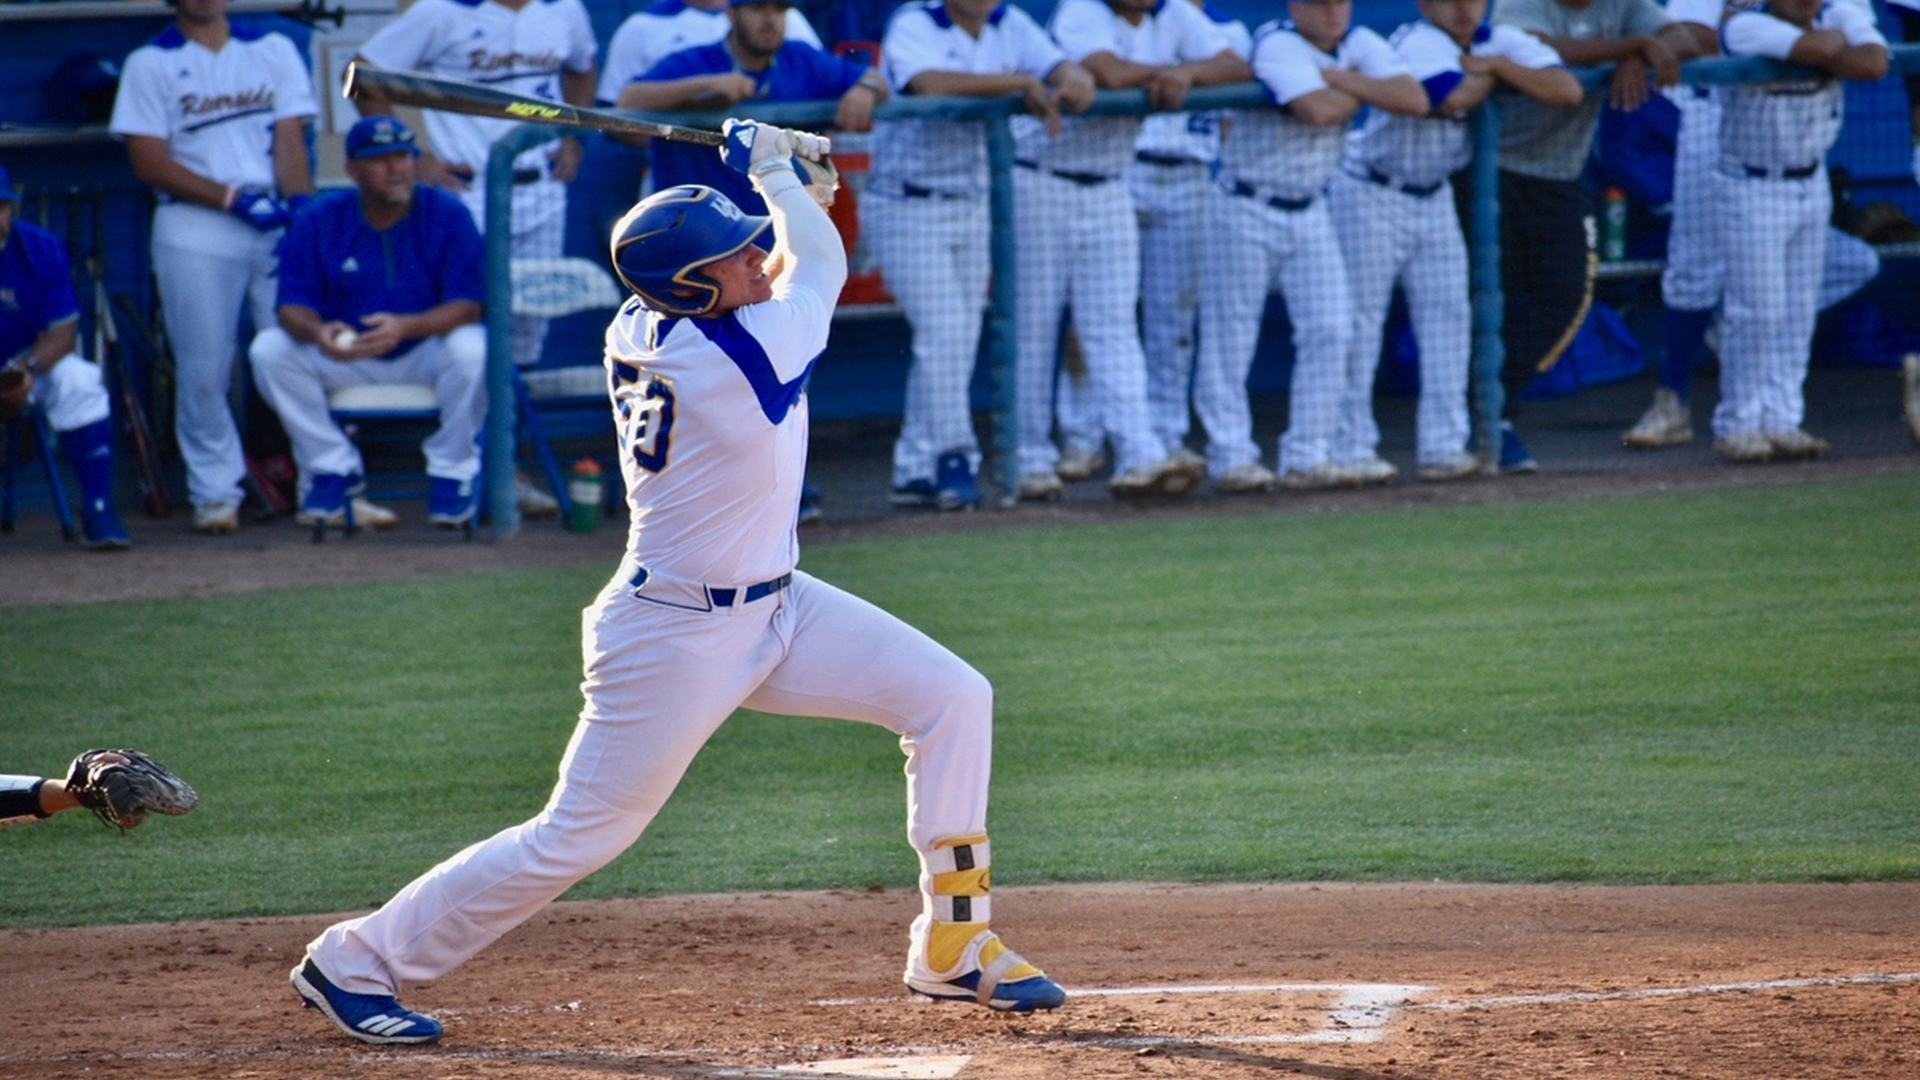 Connor Cannon - 2019 - Baseball - UC Riverside Athletics on